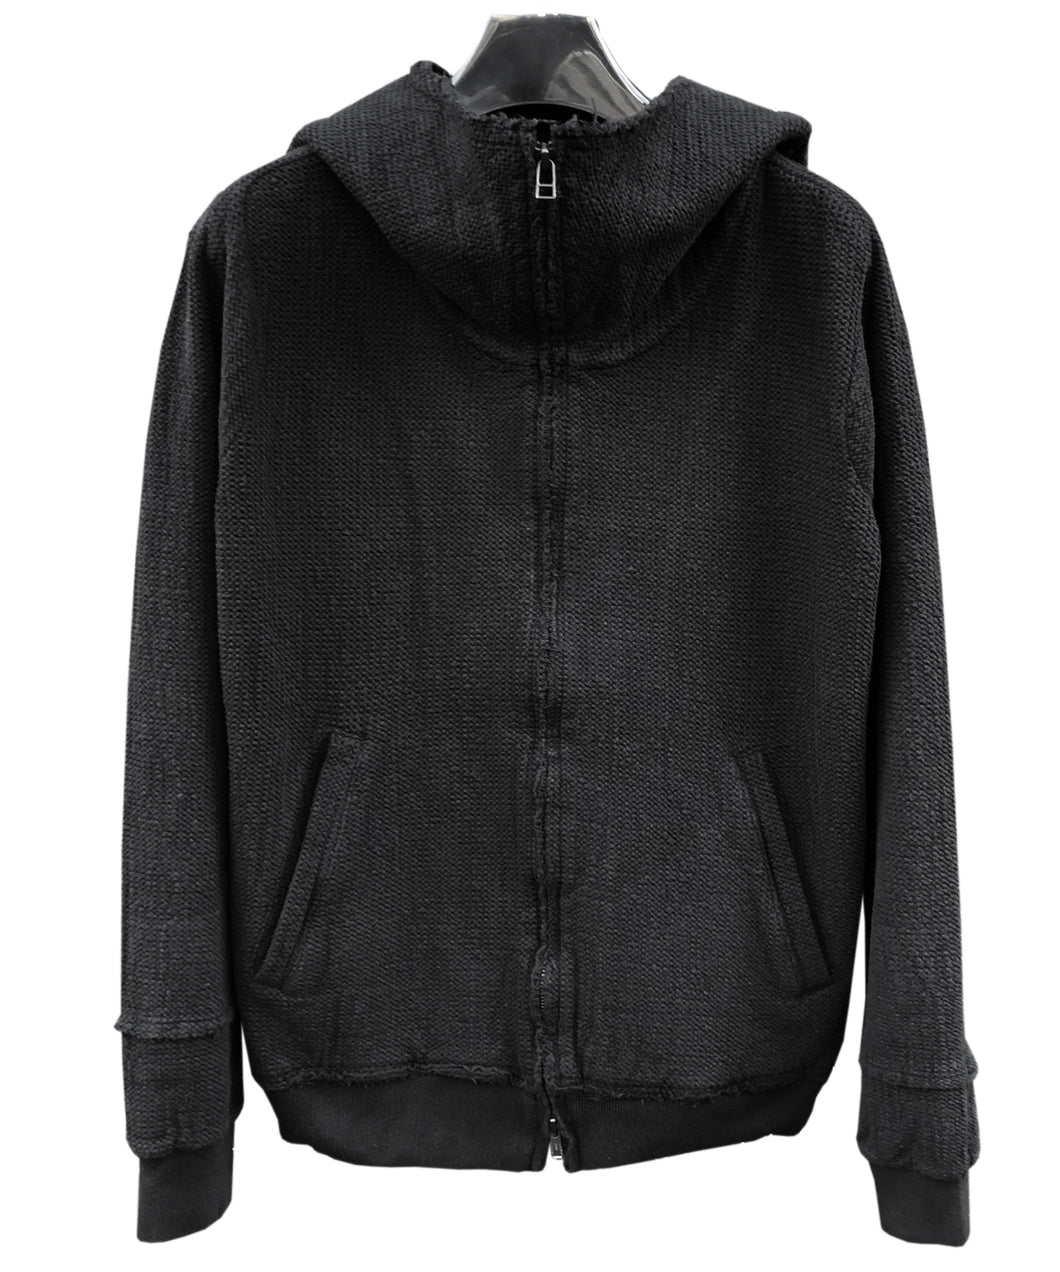 Stretch Jersey Garment Dyed Zip Up Hoody / Black